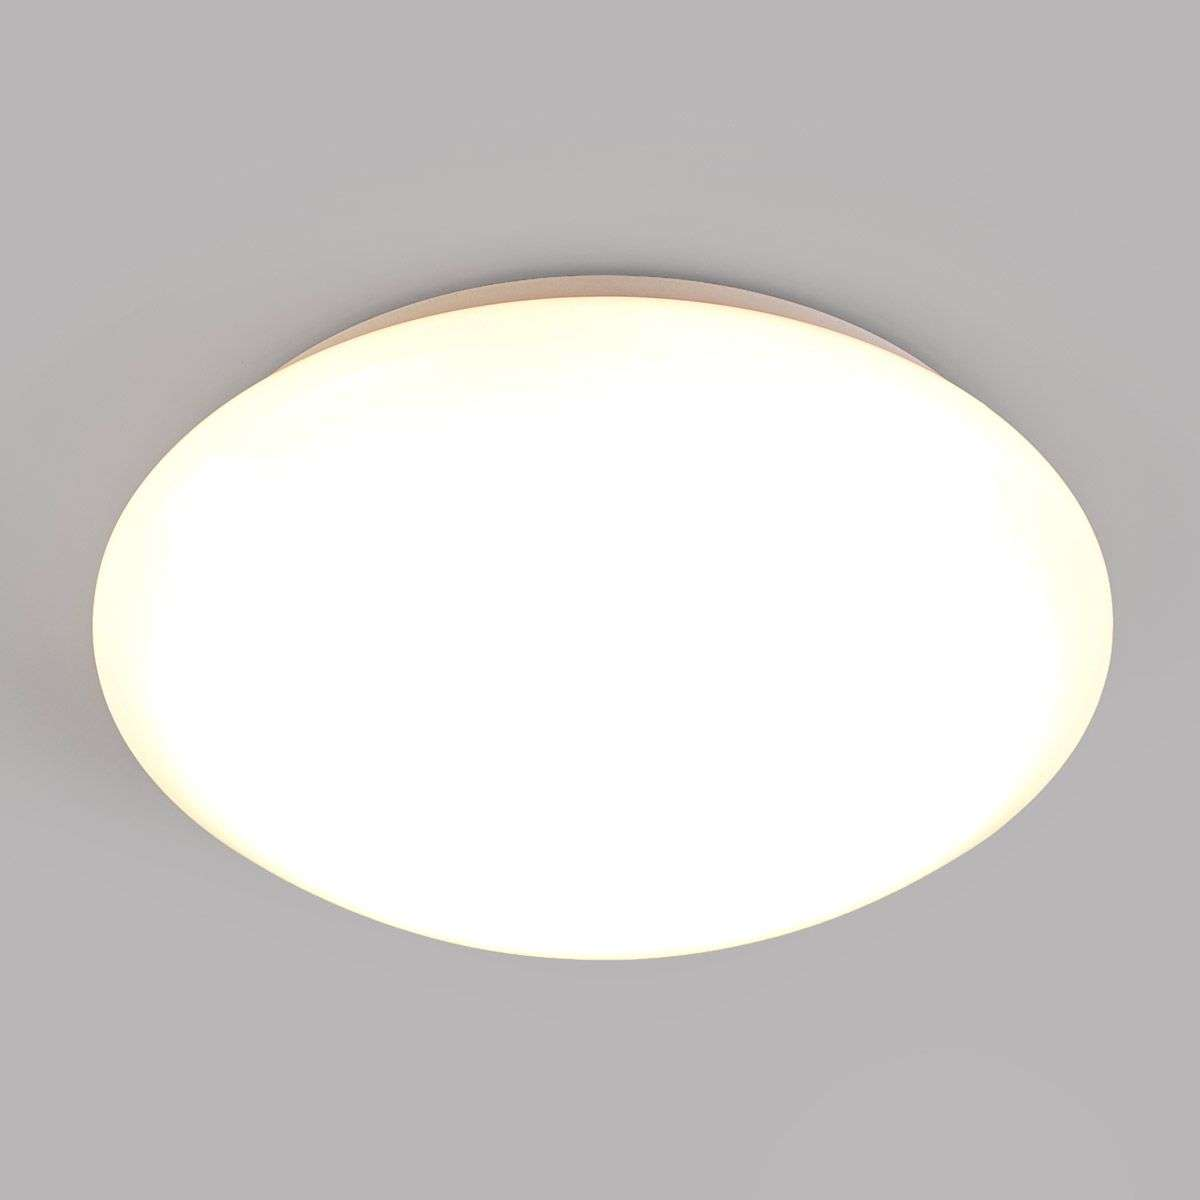 Simple LED bathroom ceiling lamp Selveta, 30 cm | Lights.co.uk